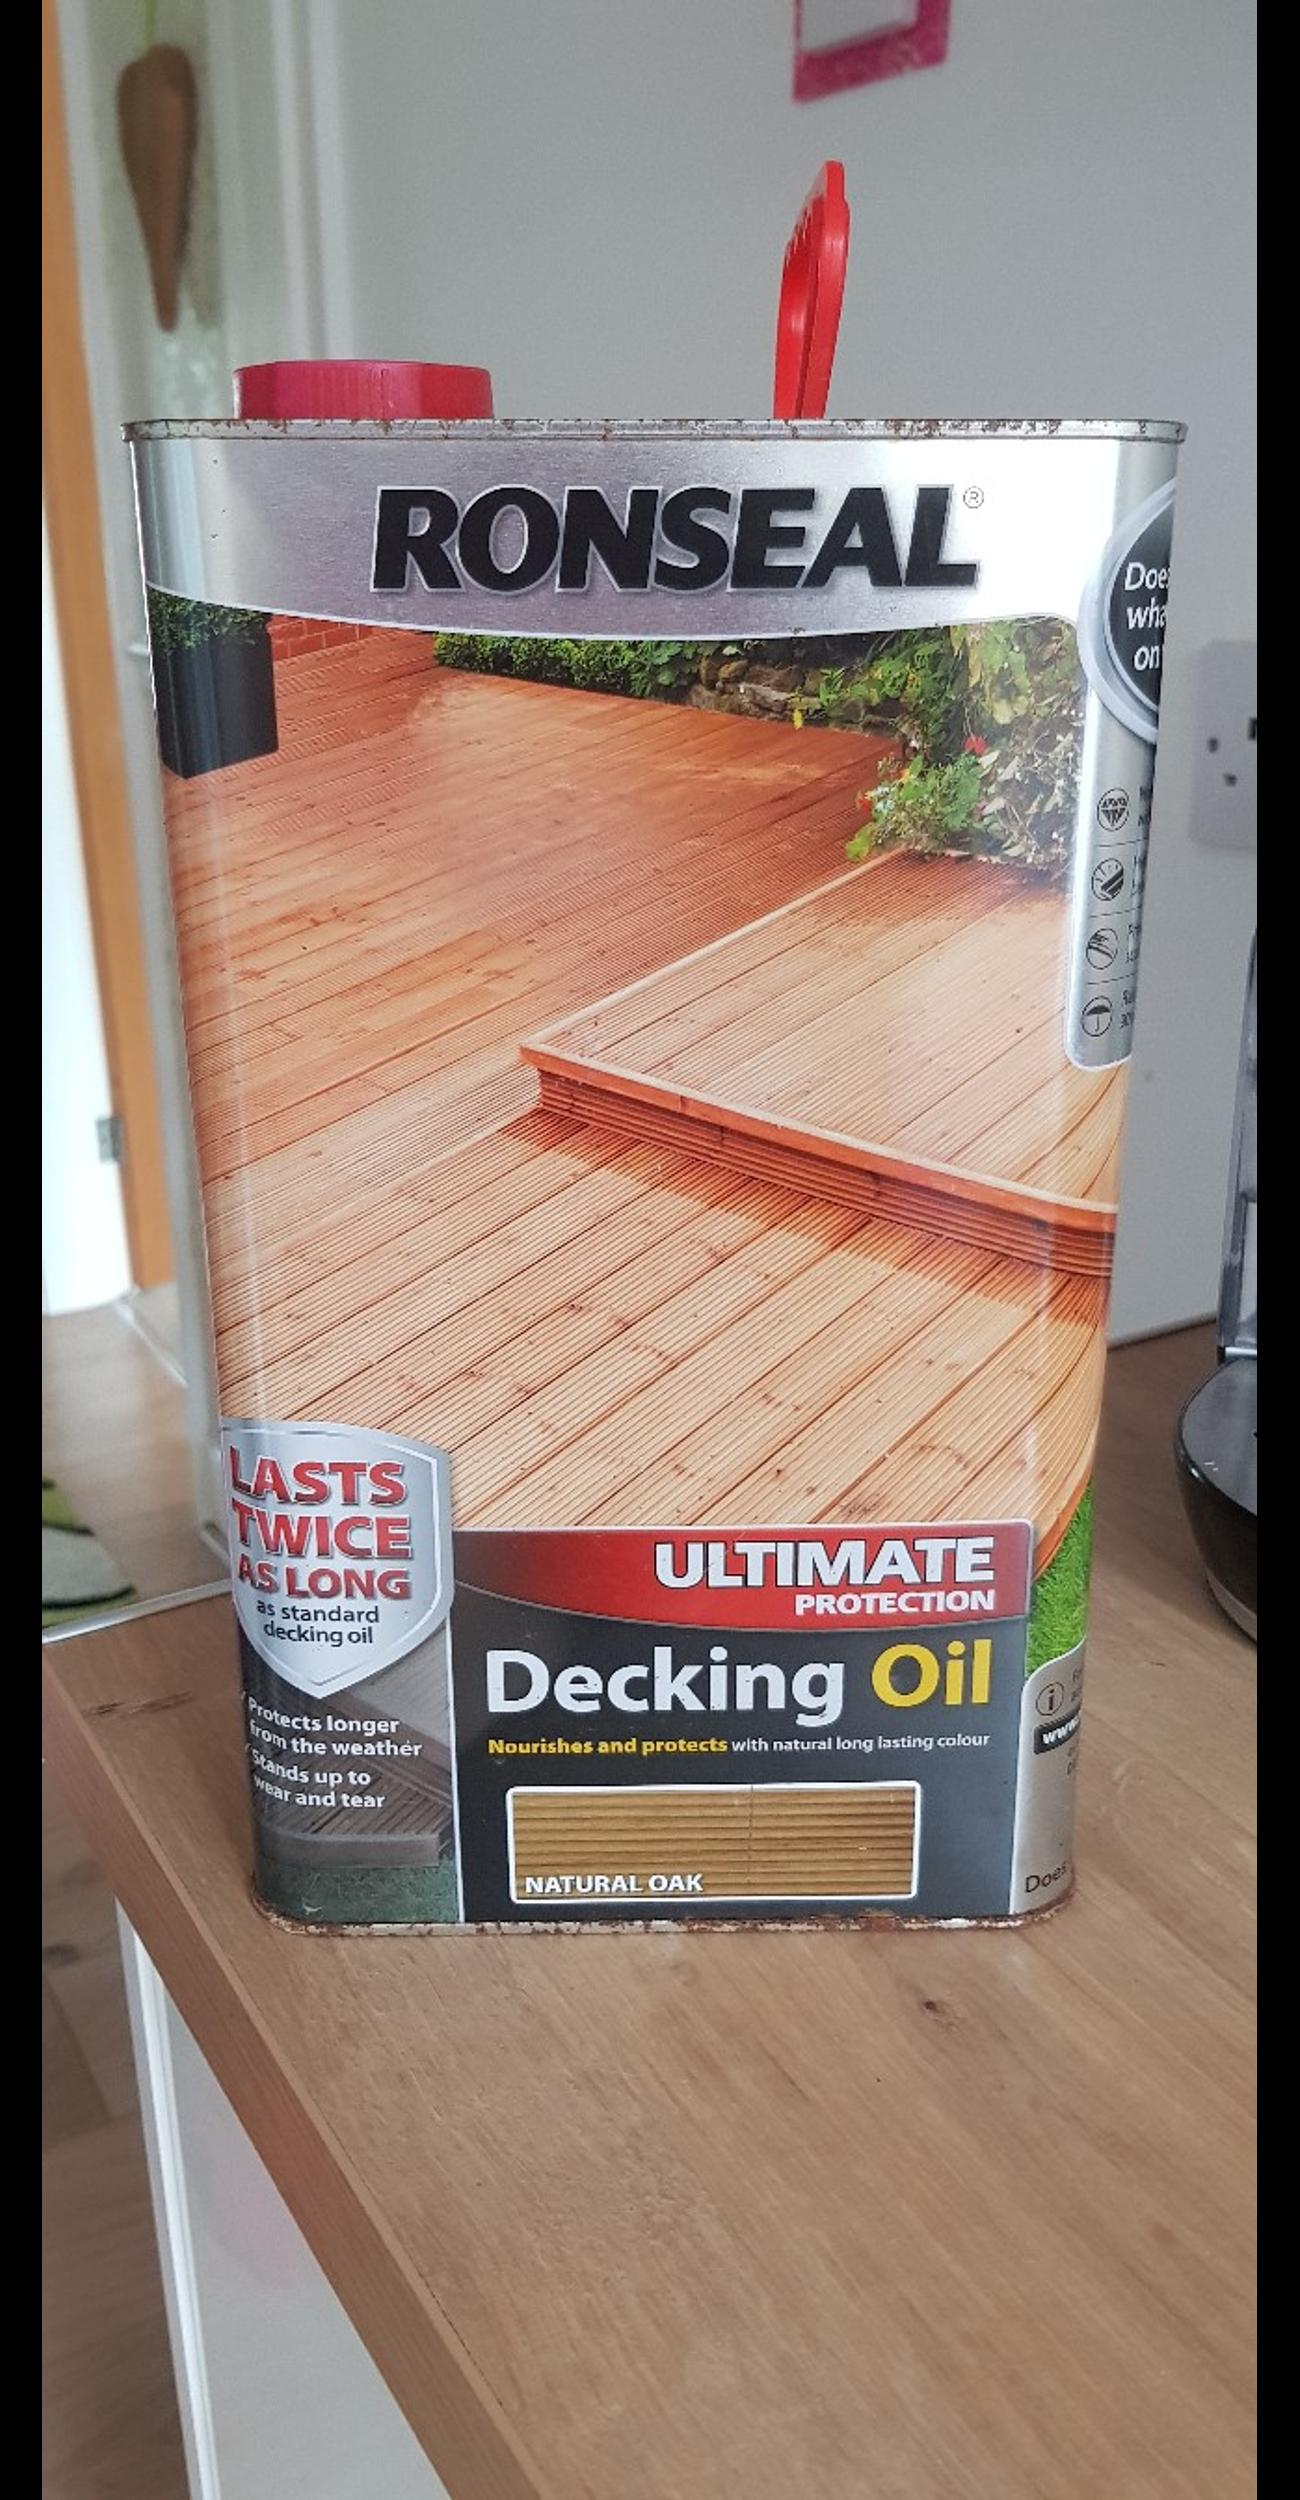 Ronseal Decking Oil Ultimate Protection 5l In B26 Birmingham For 19 00 For Sale Shpock